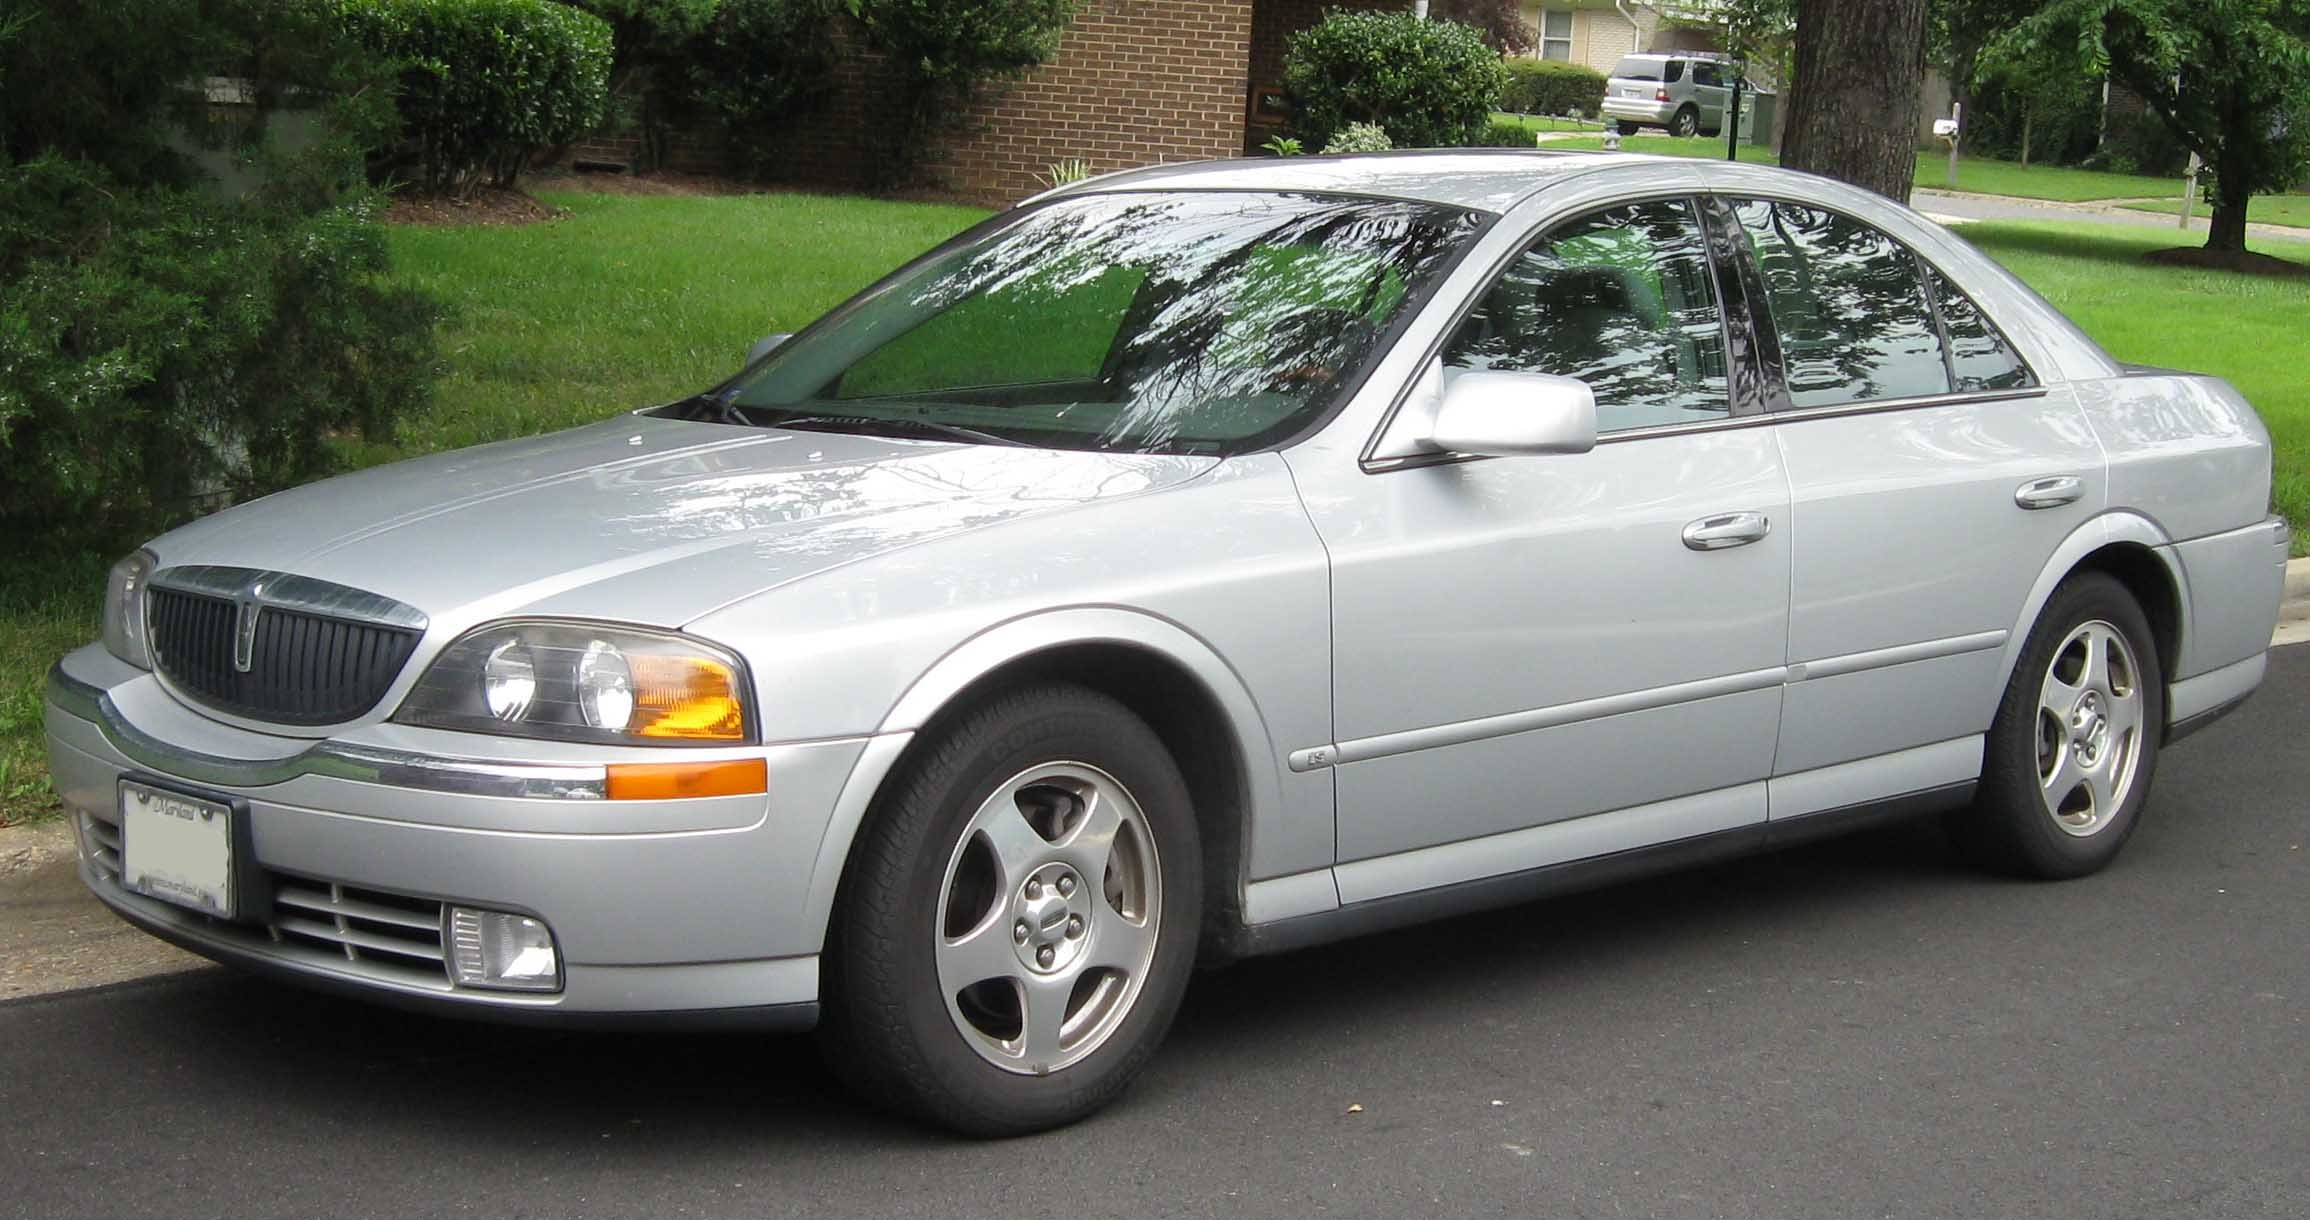 2000 Lincoln Ls V8 Engine Diagram 2003 Lincoln Ls Information and Photos Zombiedrive Of 2000 Lincoln Ls V8 Engine Diagram Lincoln Continental Engine Diagram Worksheet and Wiring Diagram •